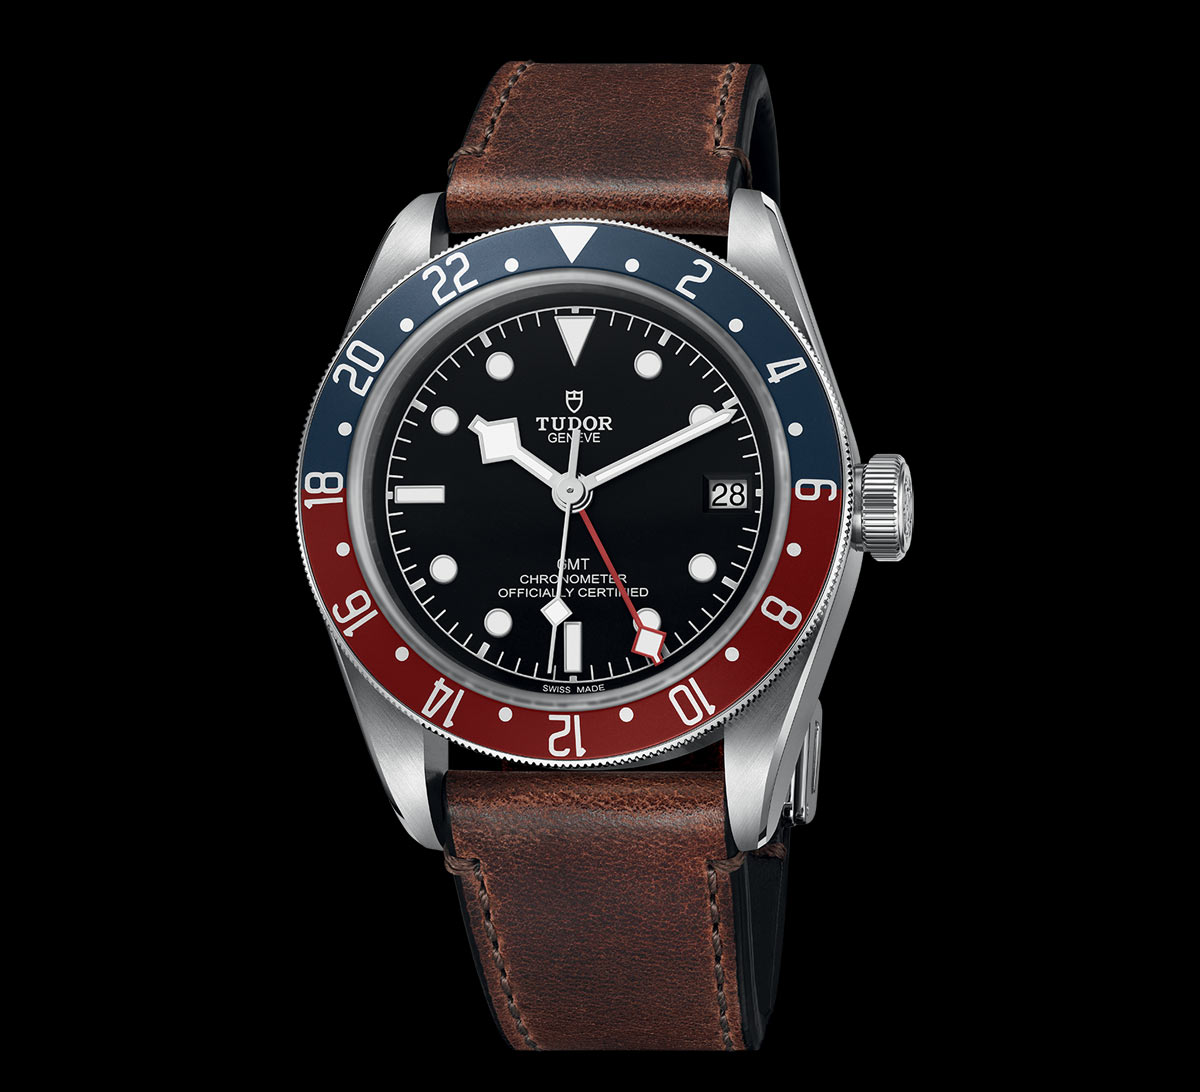 Tudor - Black Bay GMT | Time and Watches | The watch blog